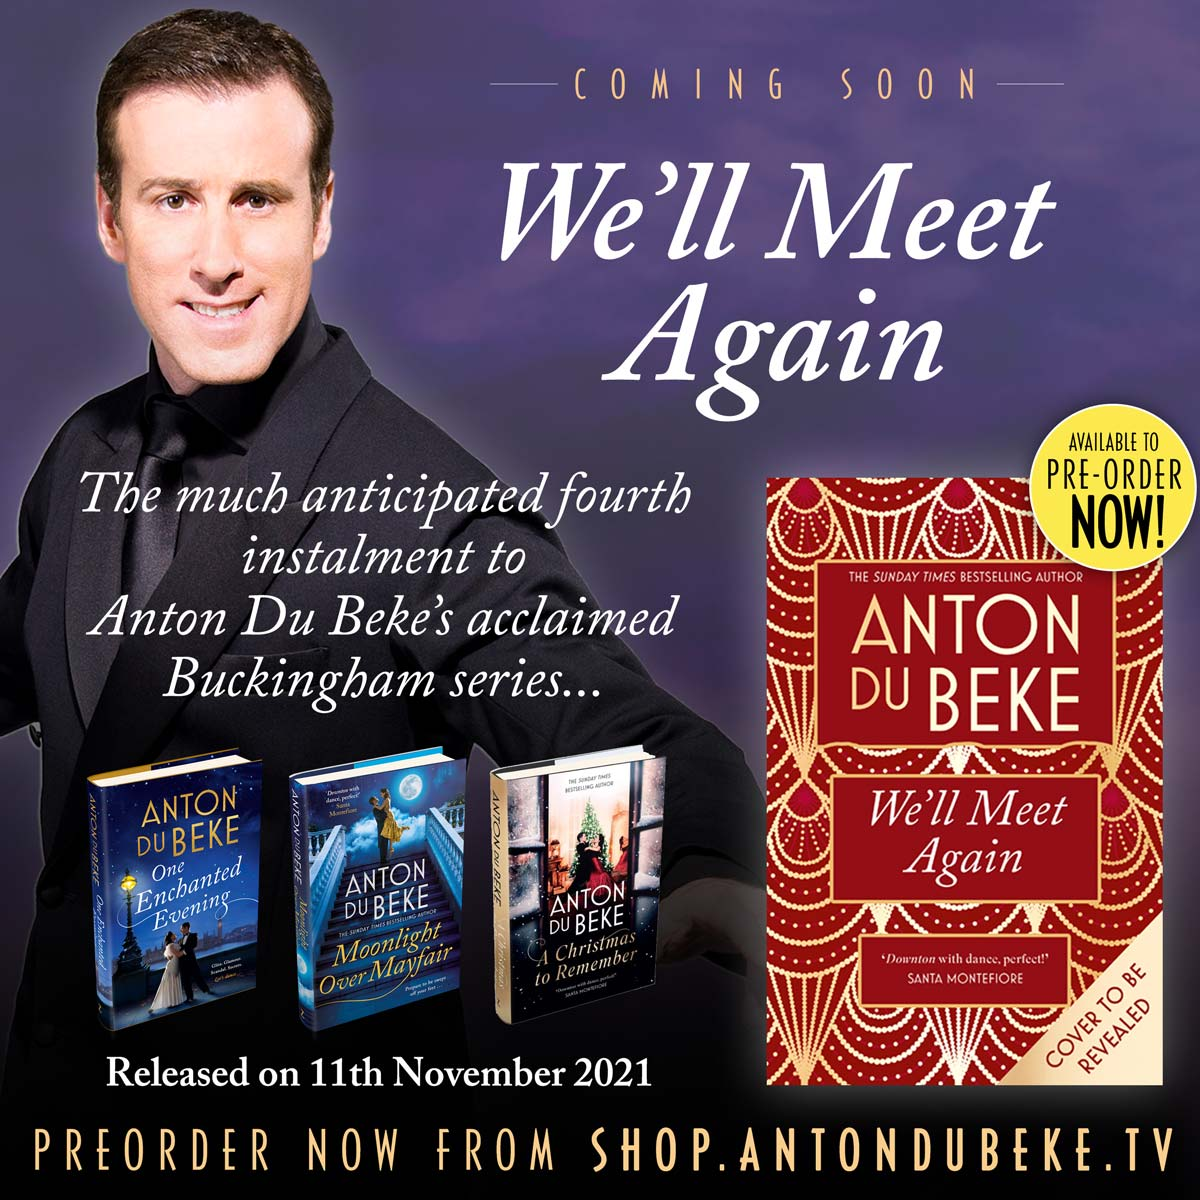 Pre-order Anton's fourth novel, We'll Meet Again from his online shop